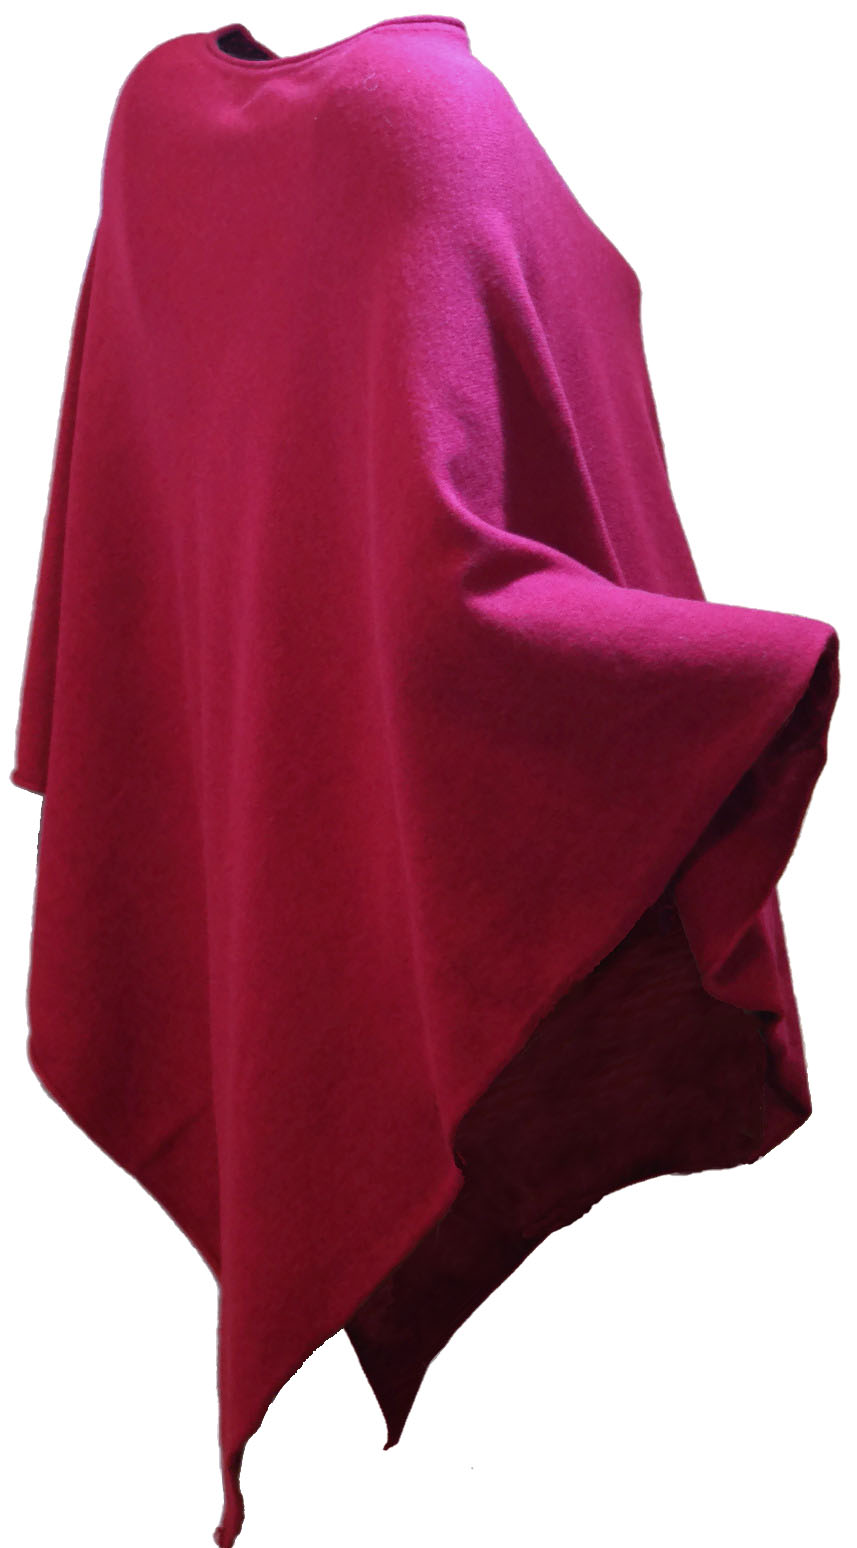 poncho-red-back-side-dsc00378-copy.jpg